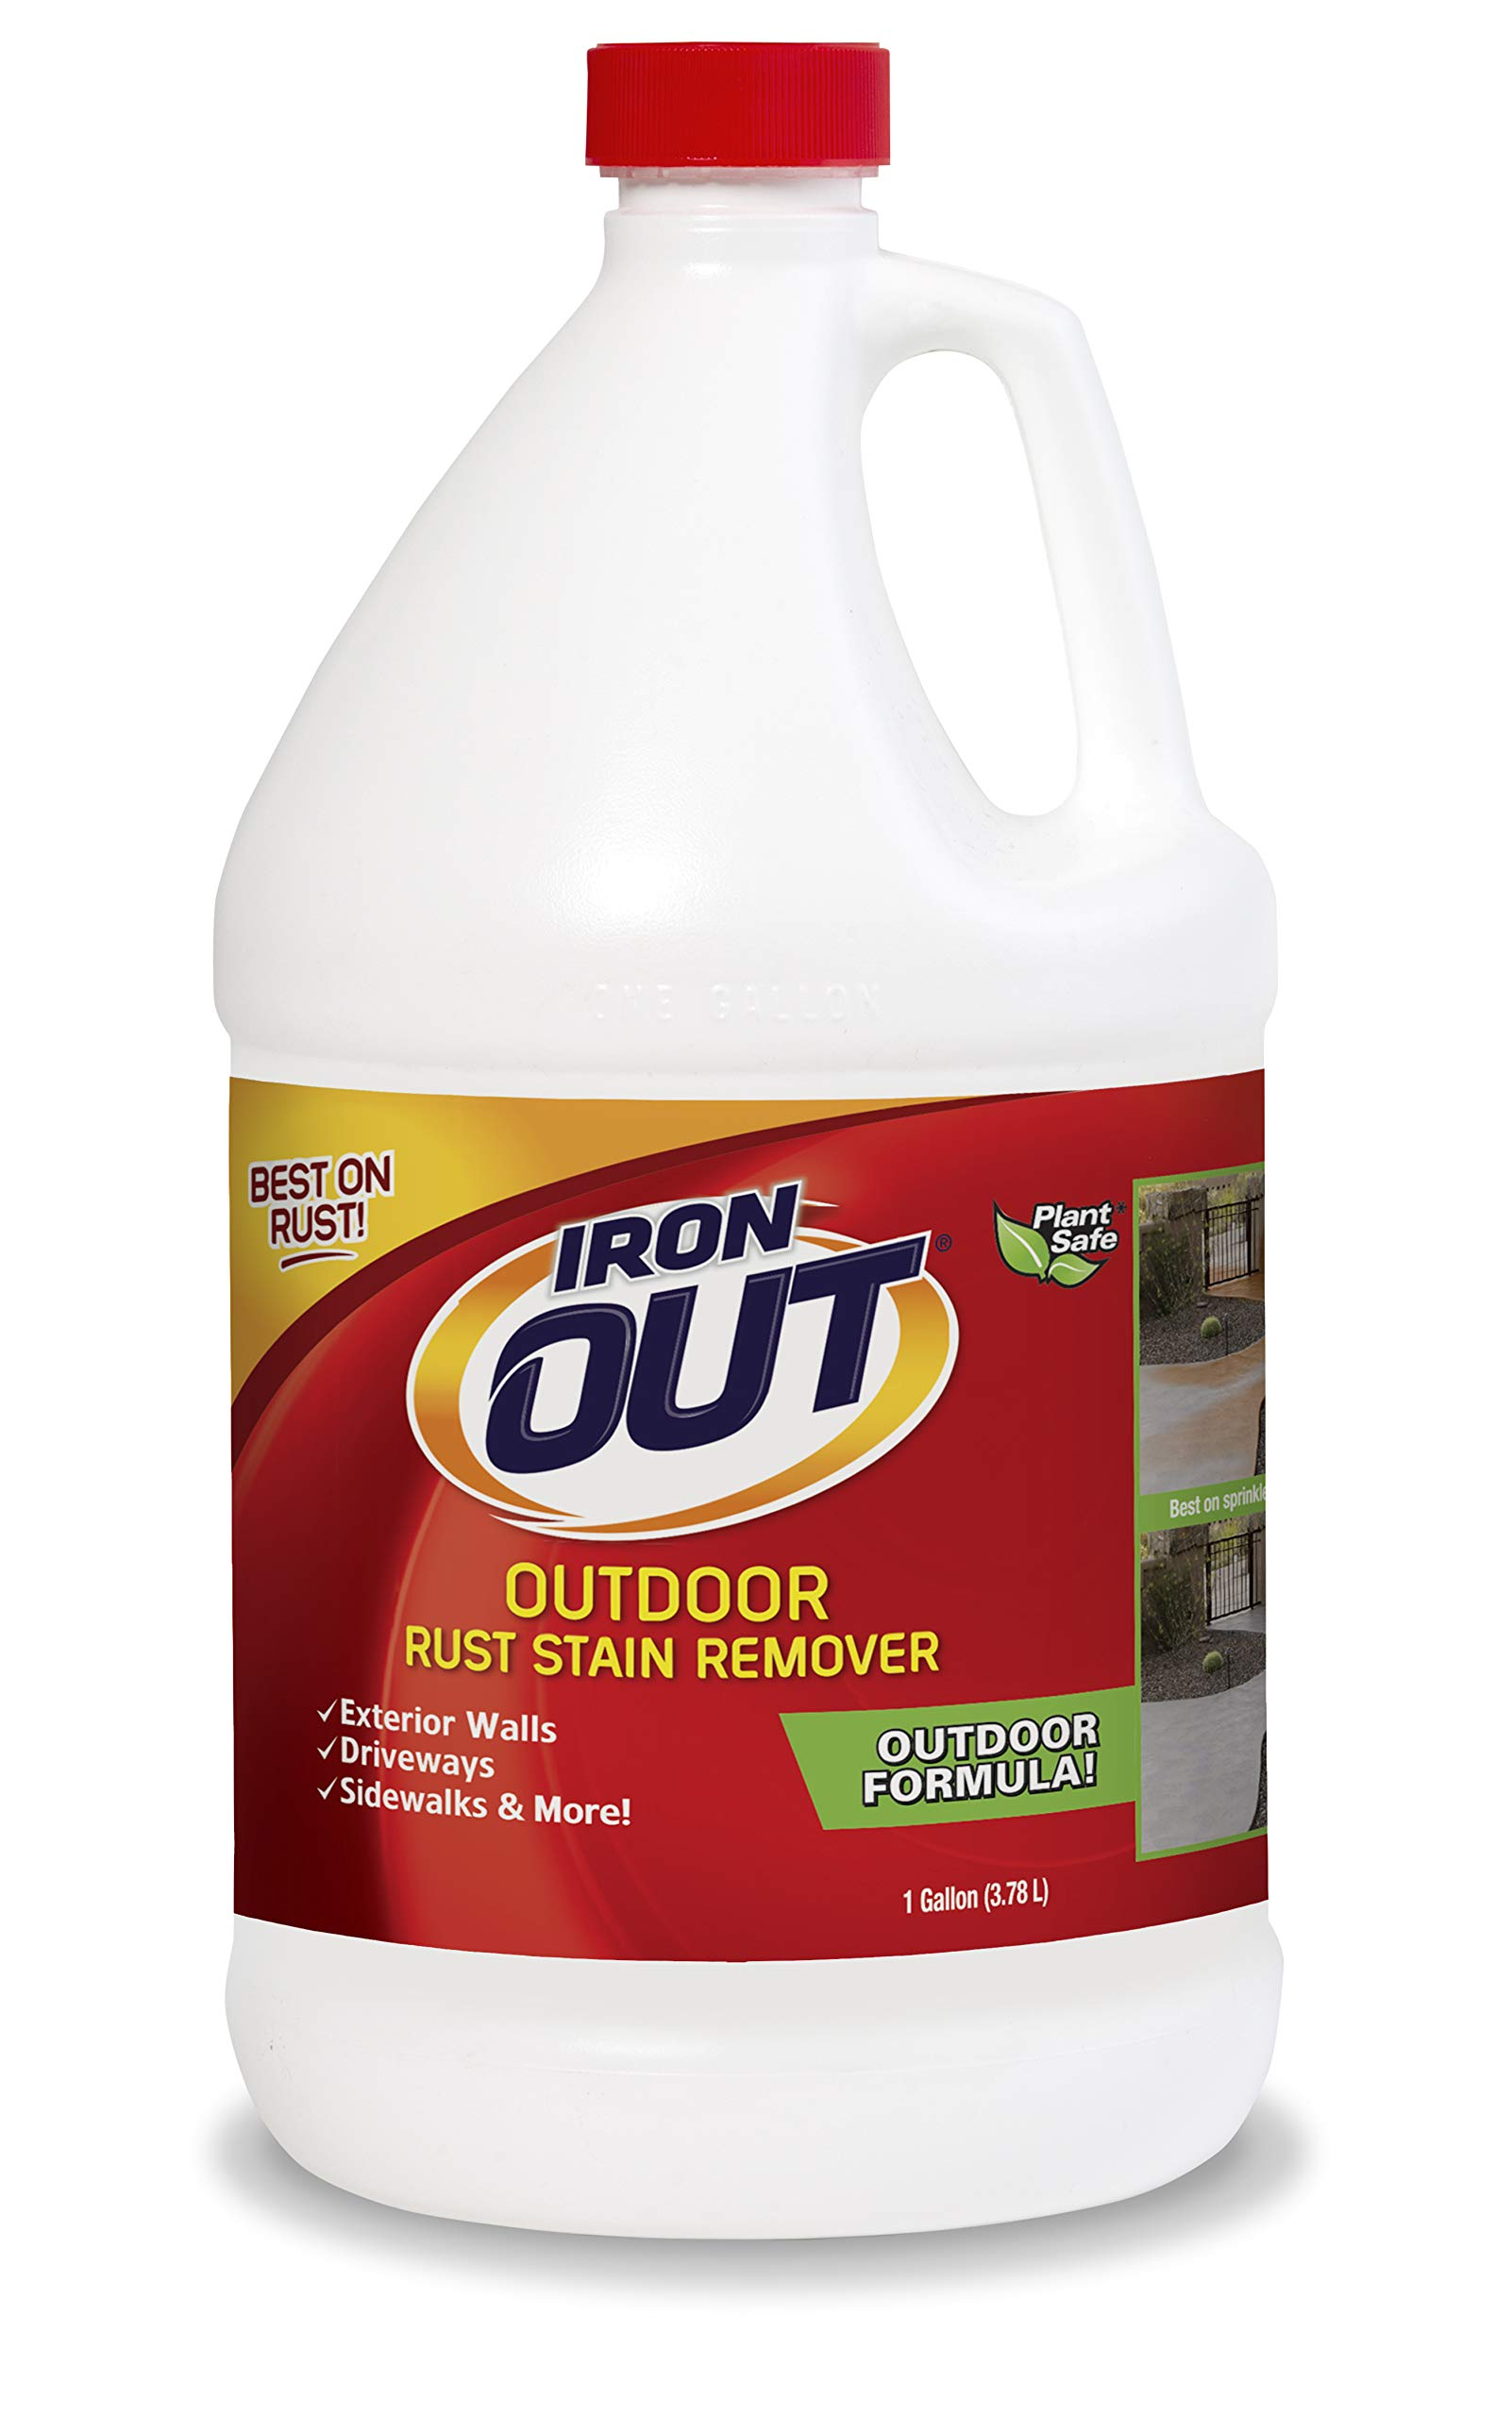 Iron OUT Outdoor Rust Stain Remover, 1 Gallon by Summit Brands